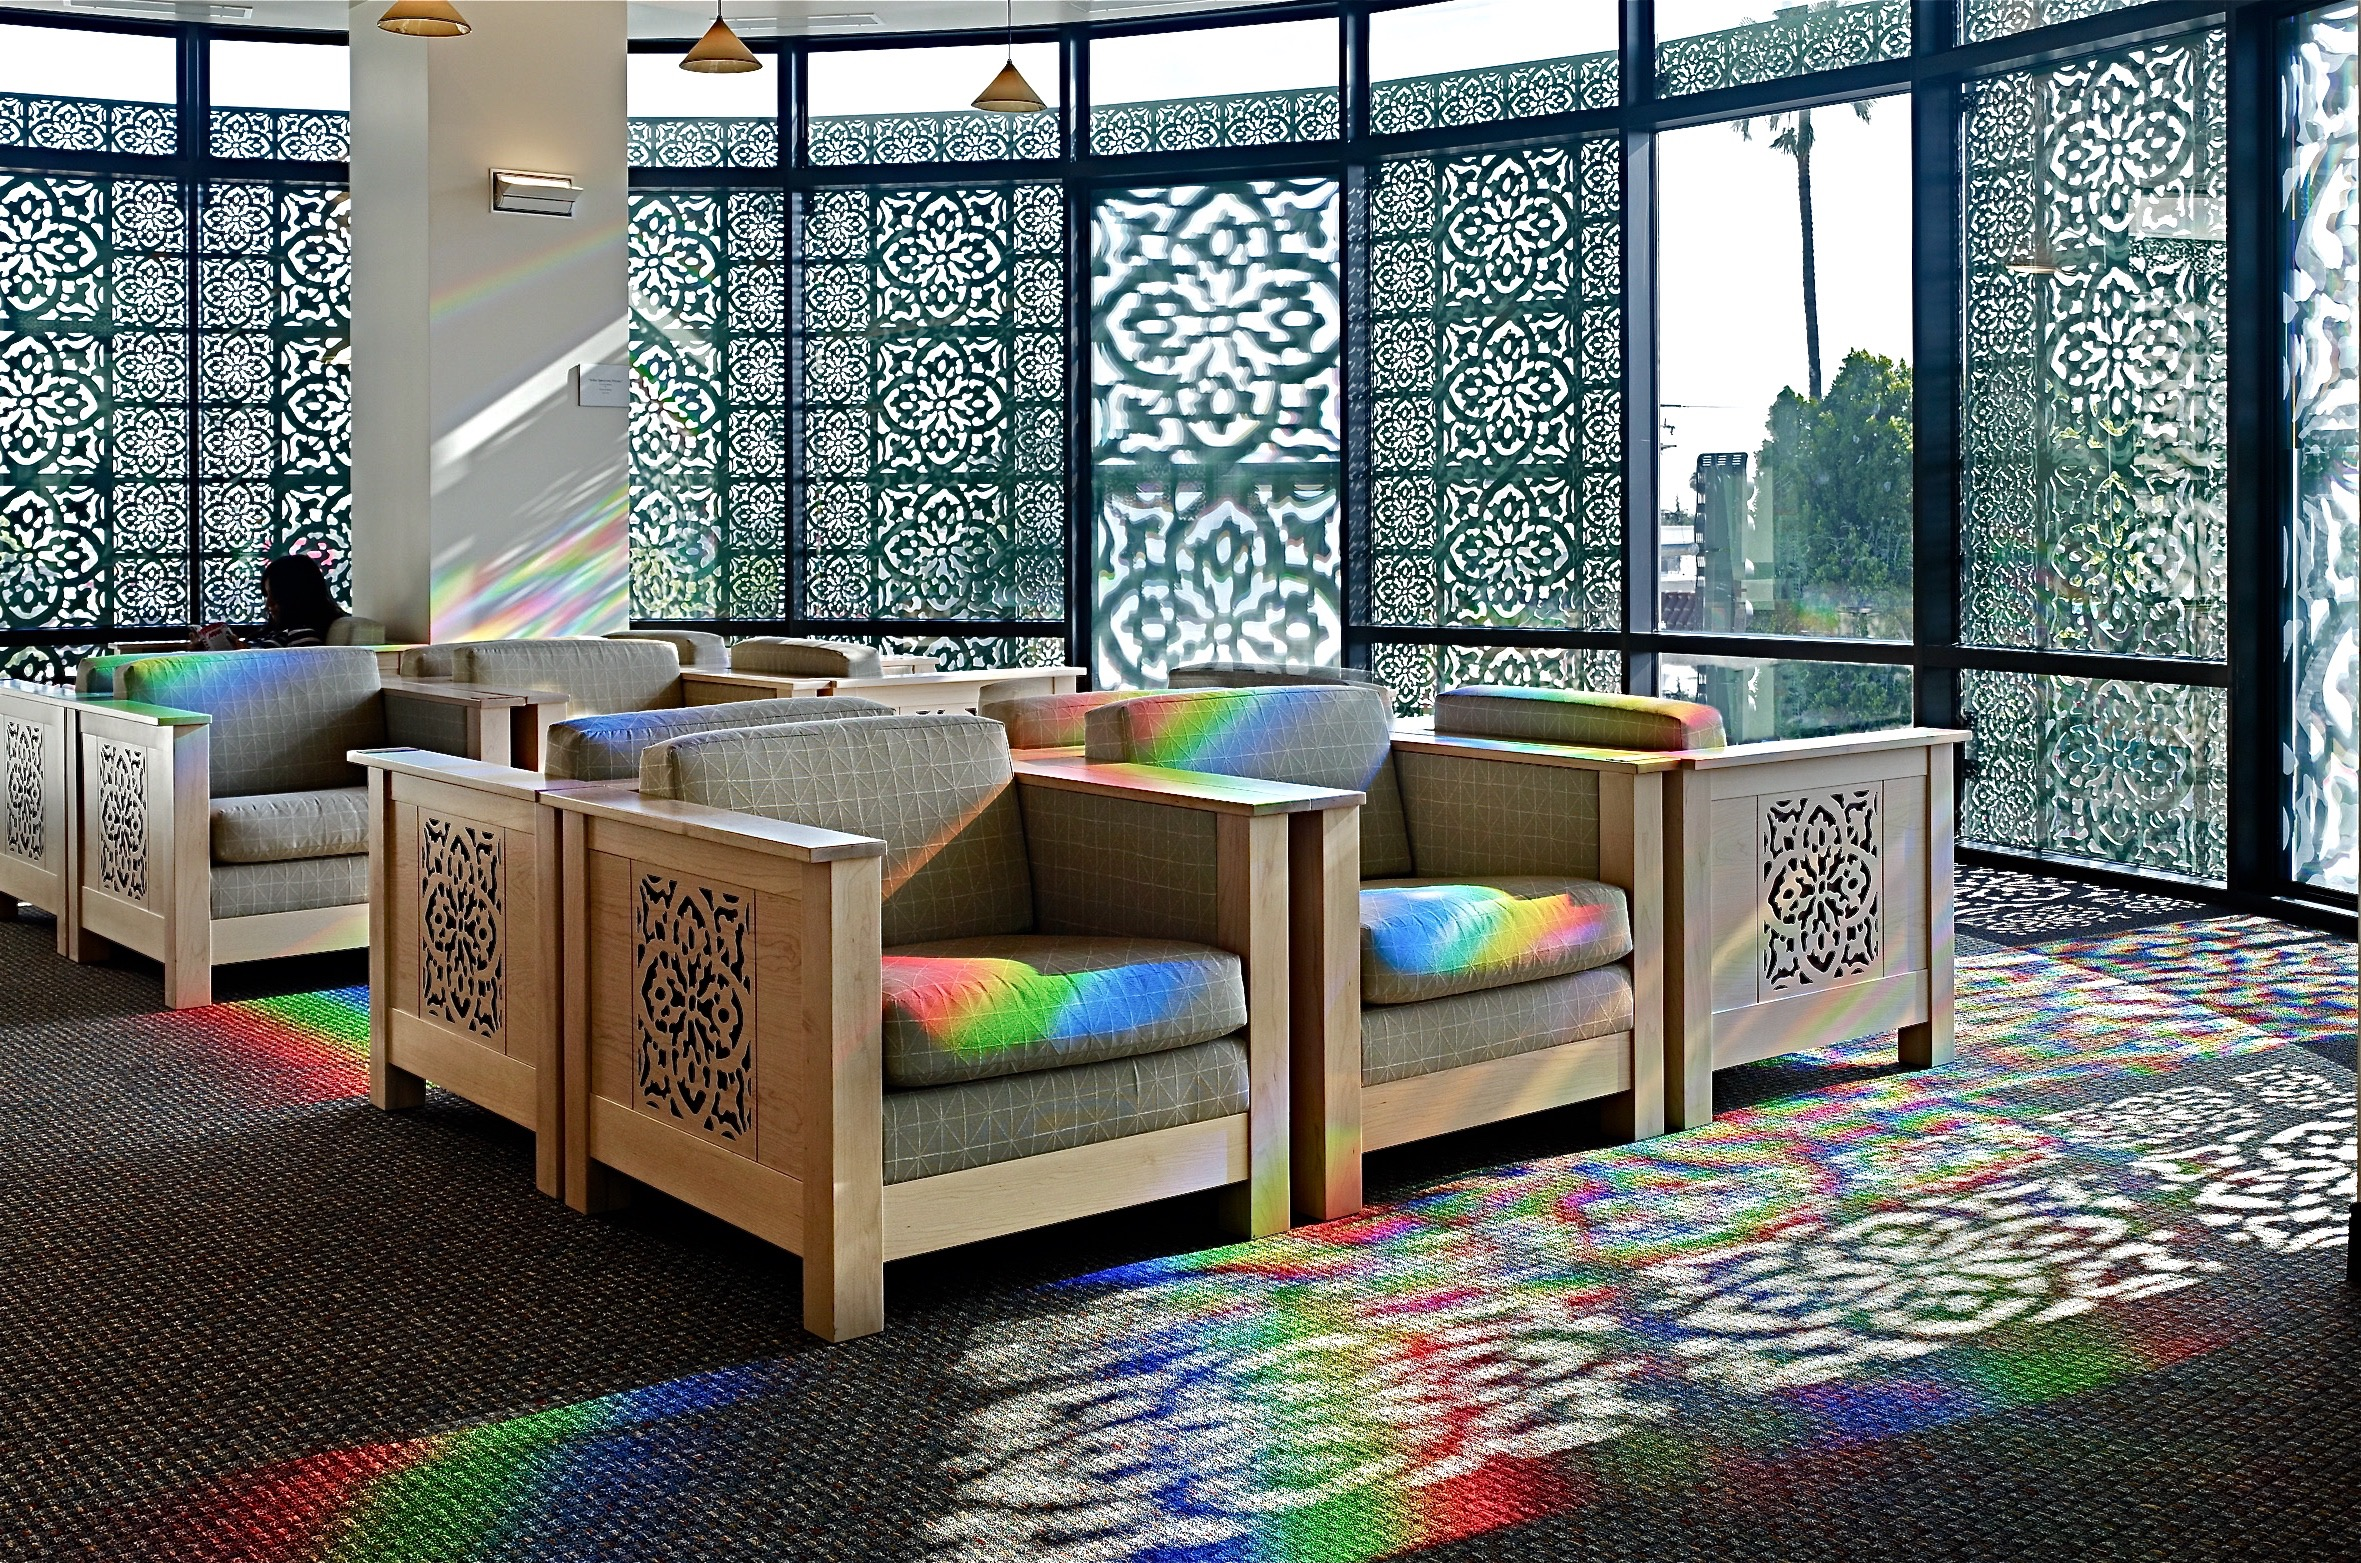 Solar powered art installation in a library.